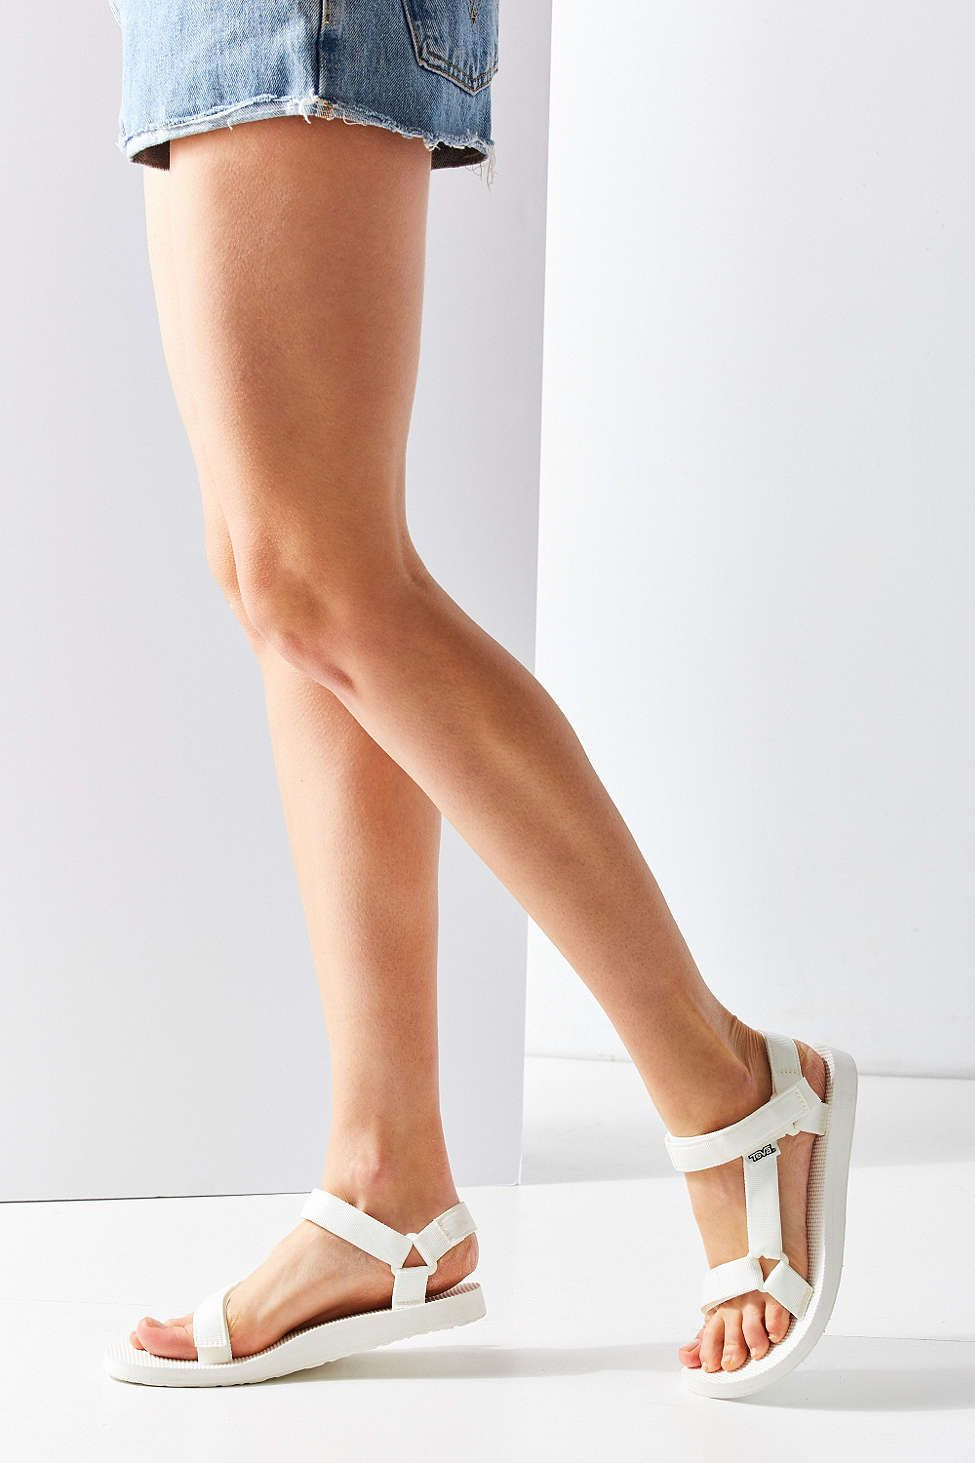 Today styles of sexy sandals